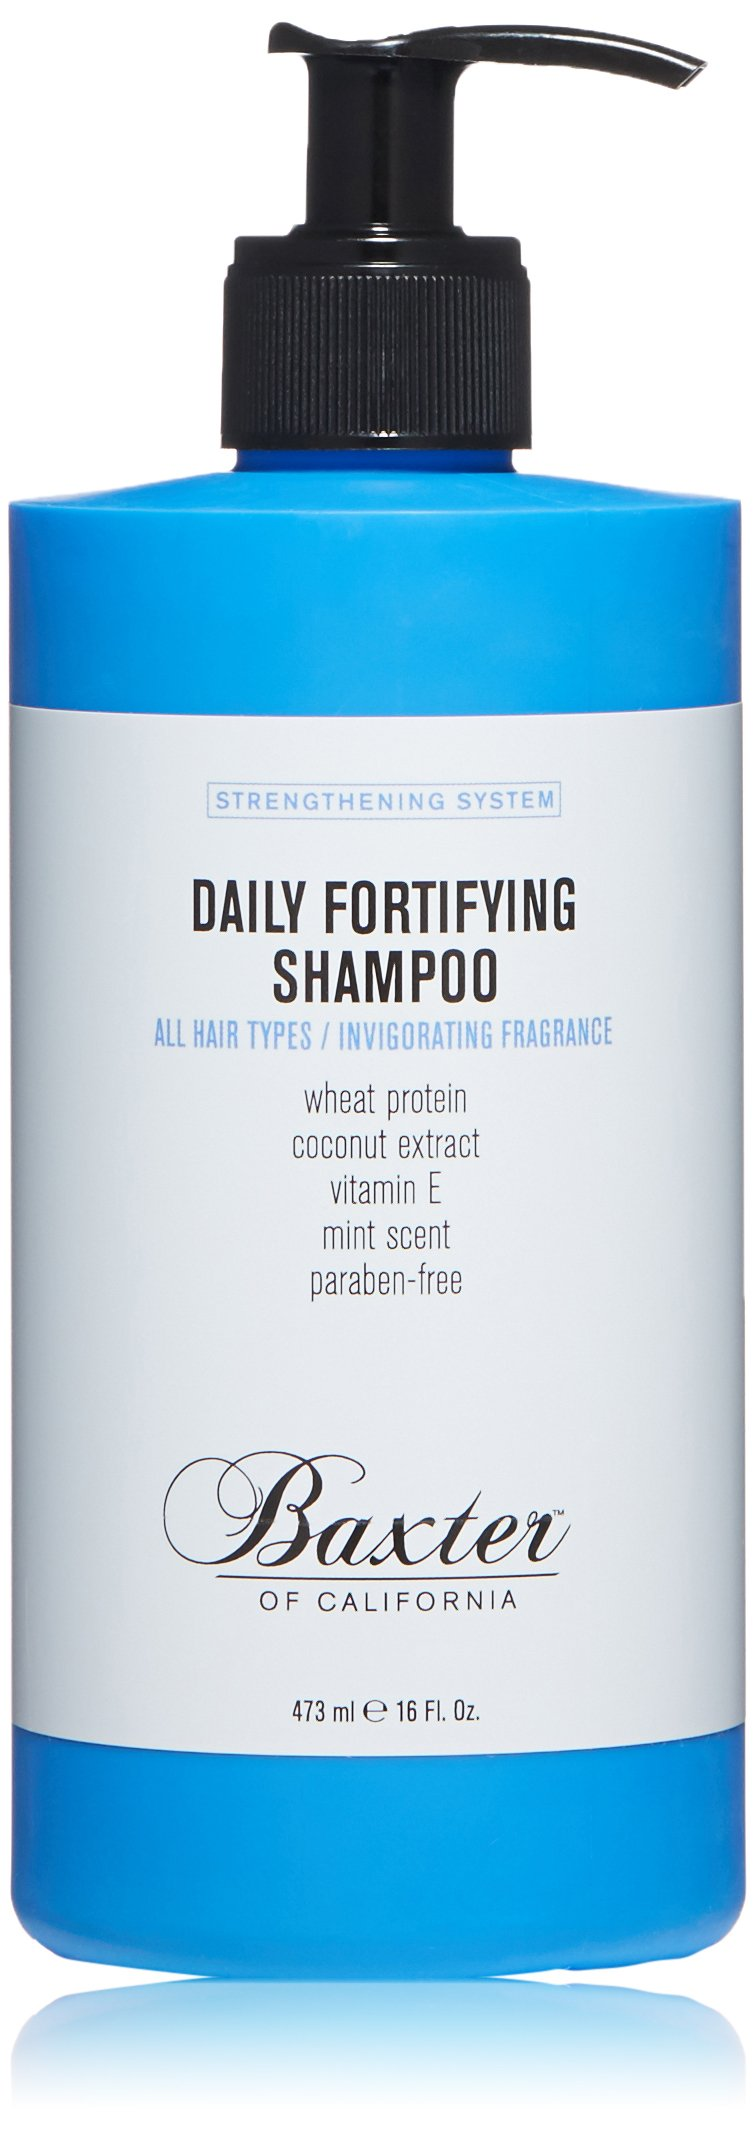 Baxter of California Men's Daily Fortifying Shampoo for All Hair Types, Fresh Mint Scent, 16 oz. by Baxter of California